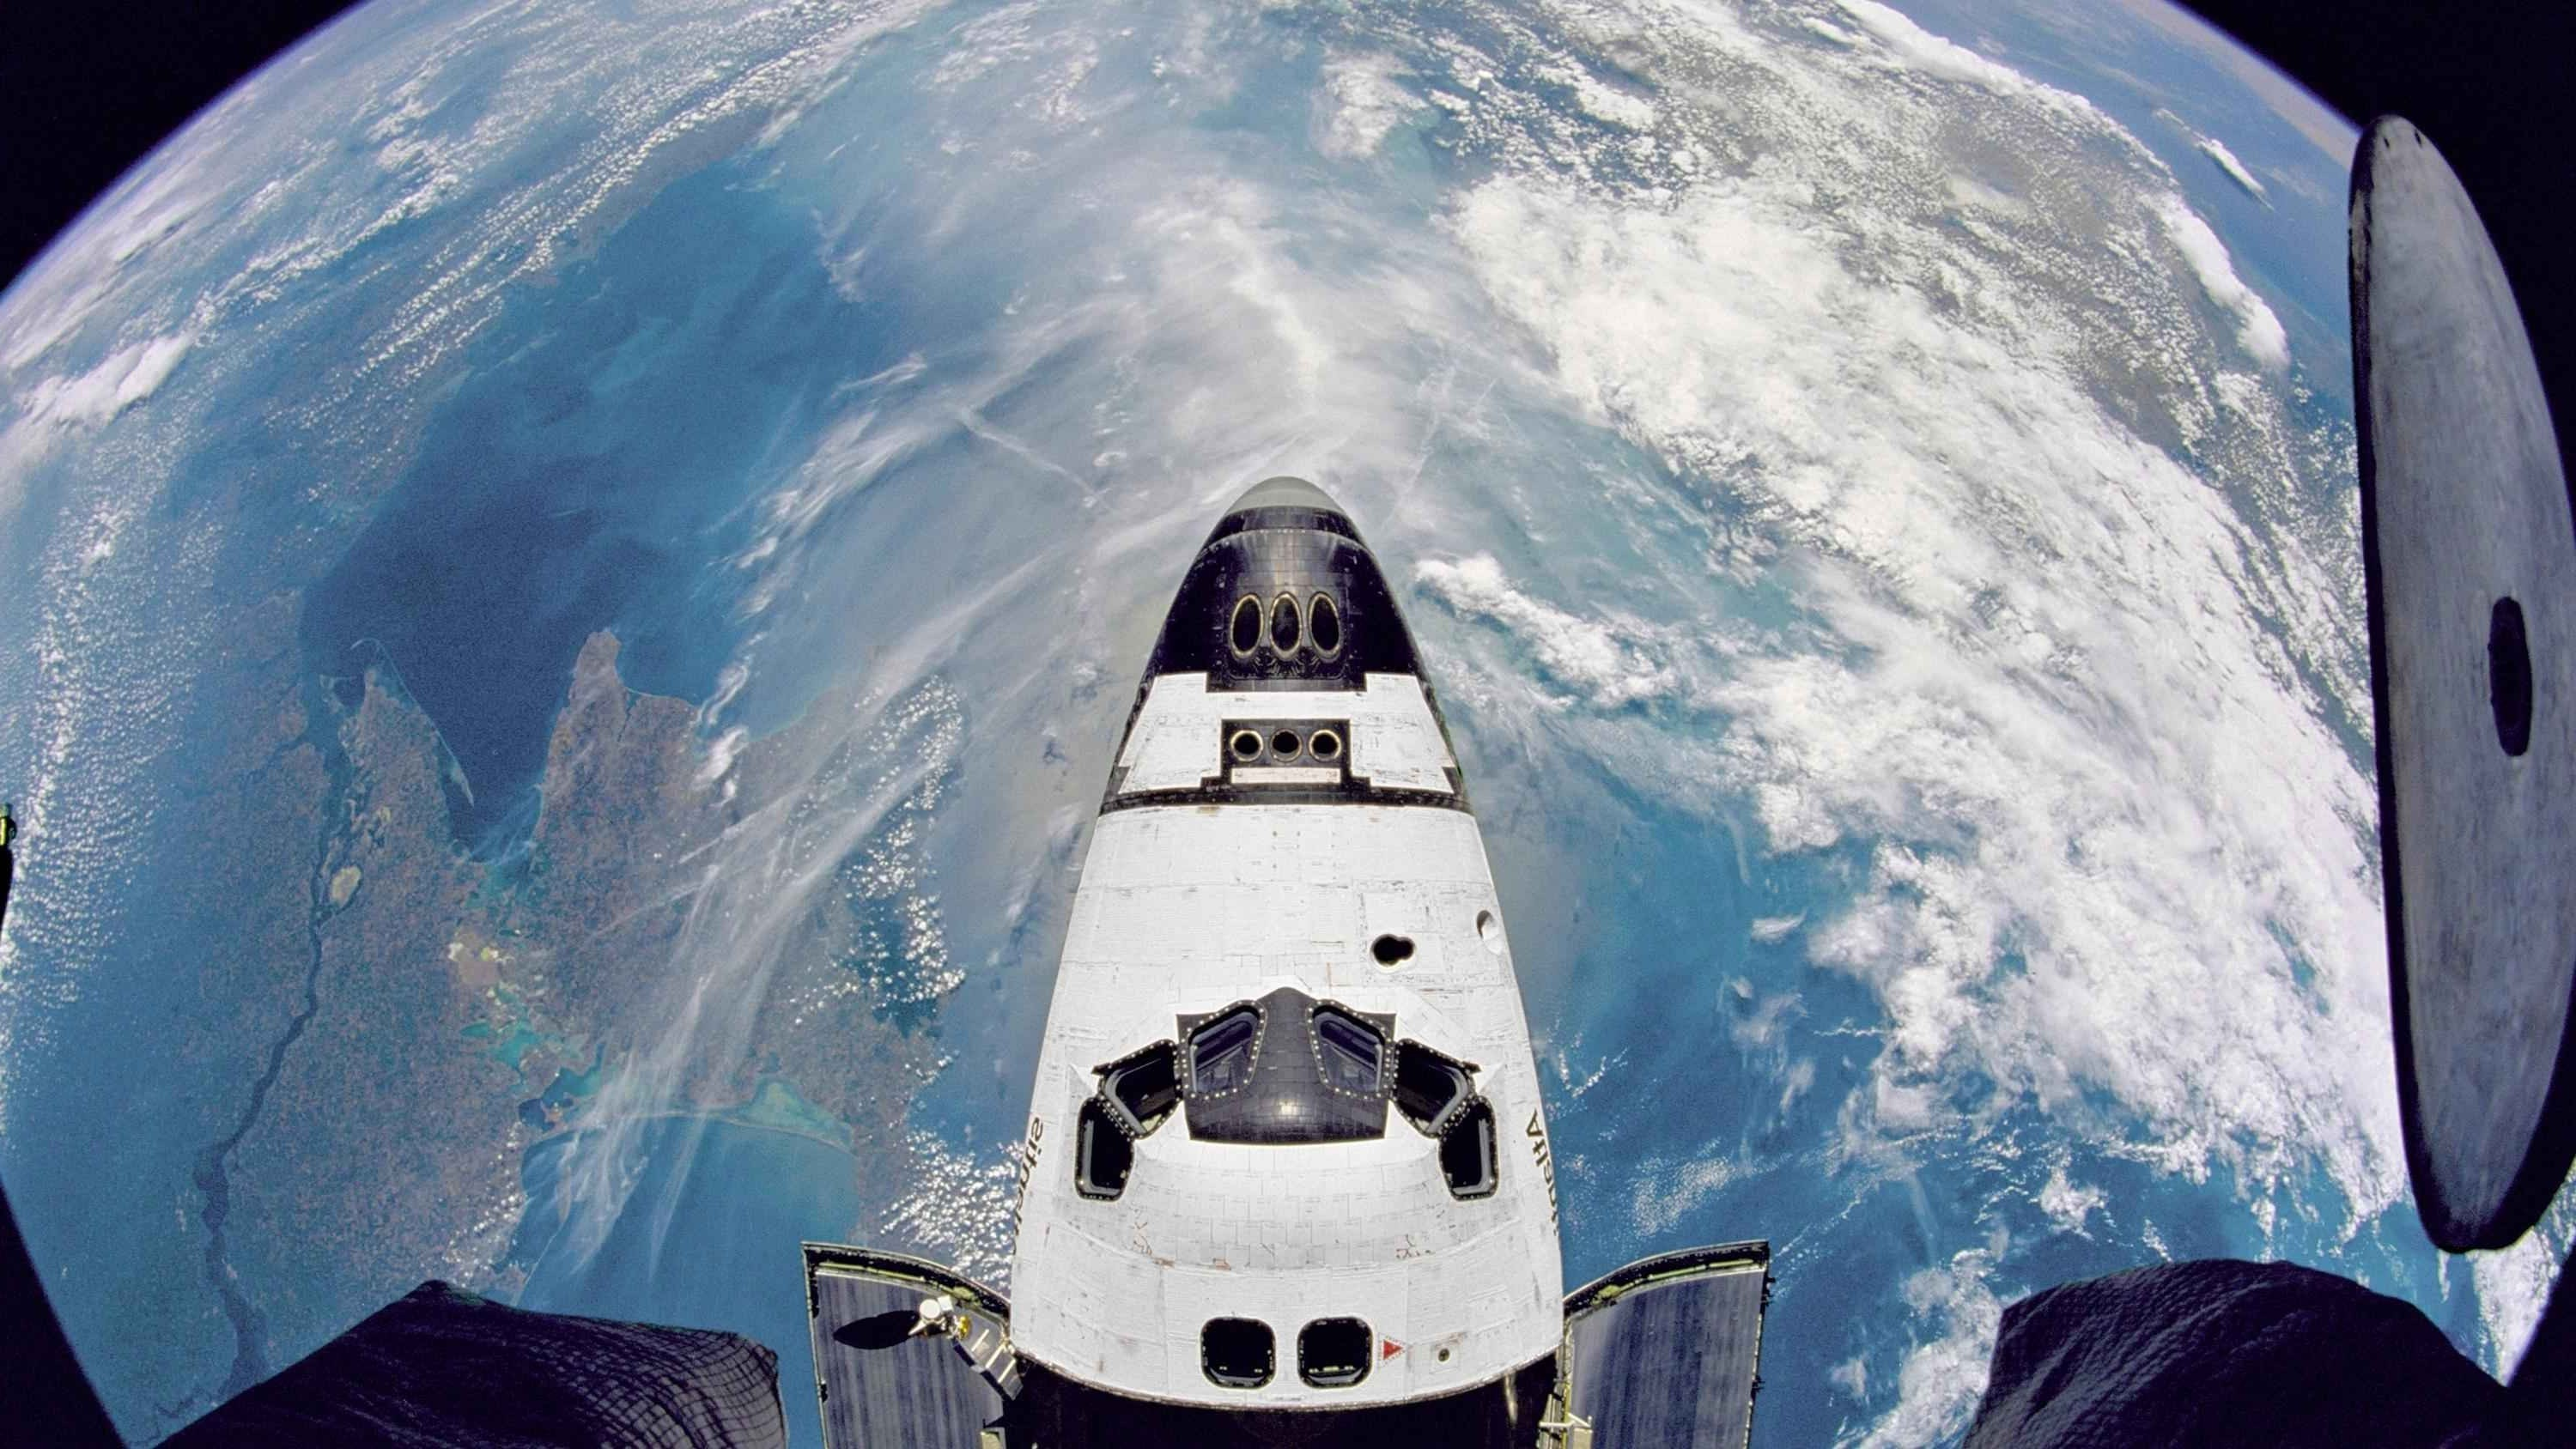 3000x1688 - Space Shuttle atlantis Wallpapers 25